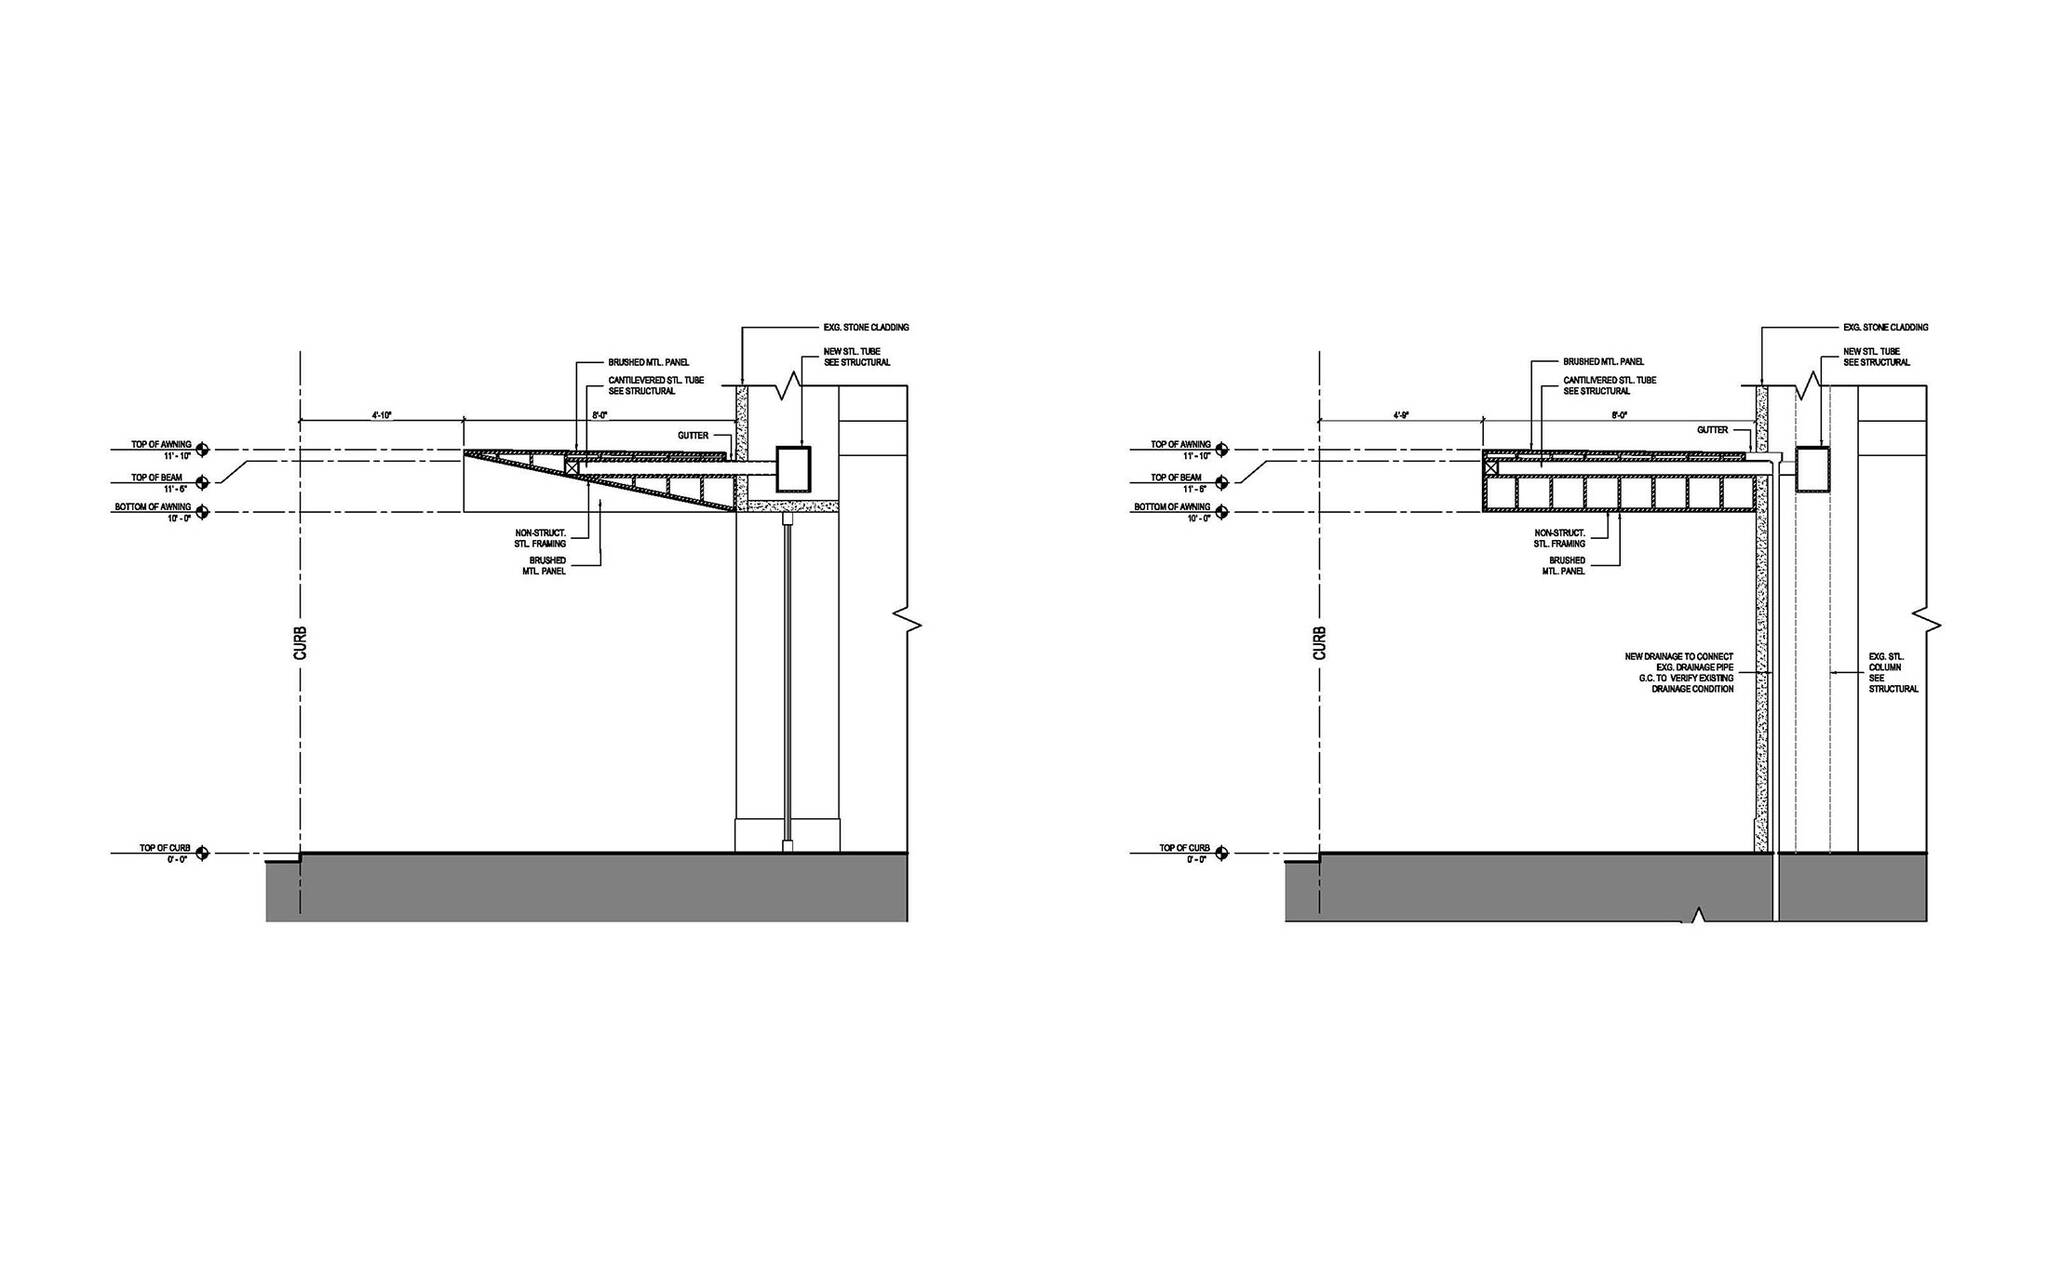 Section diagram of the Vida Shoes International canopy project for the shop located at 29 West 56th Street in Midtown, New York City designed by the architecture studio Danny Forster & Architecture